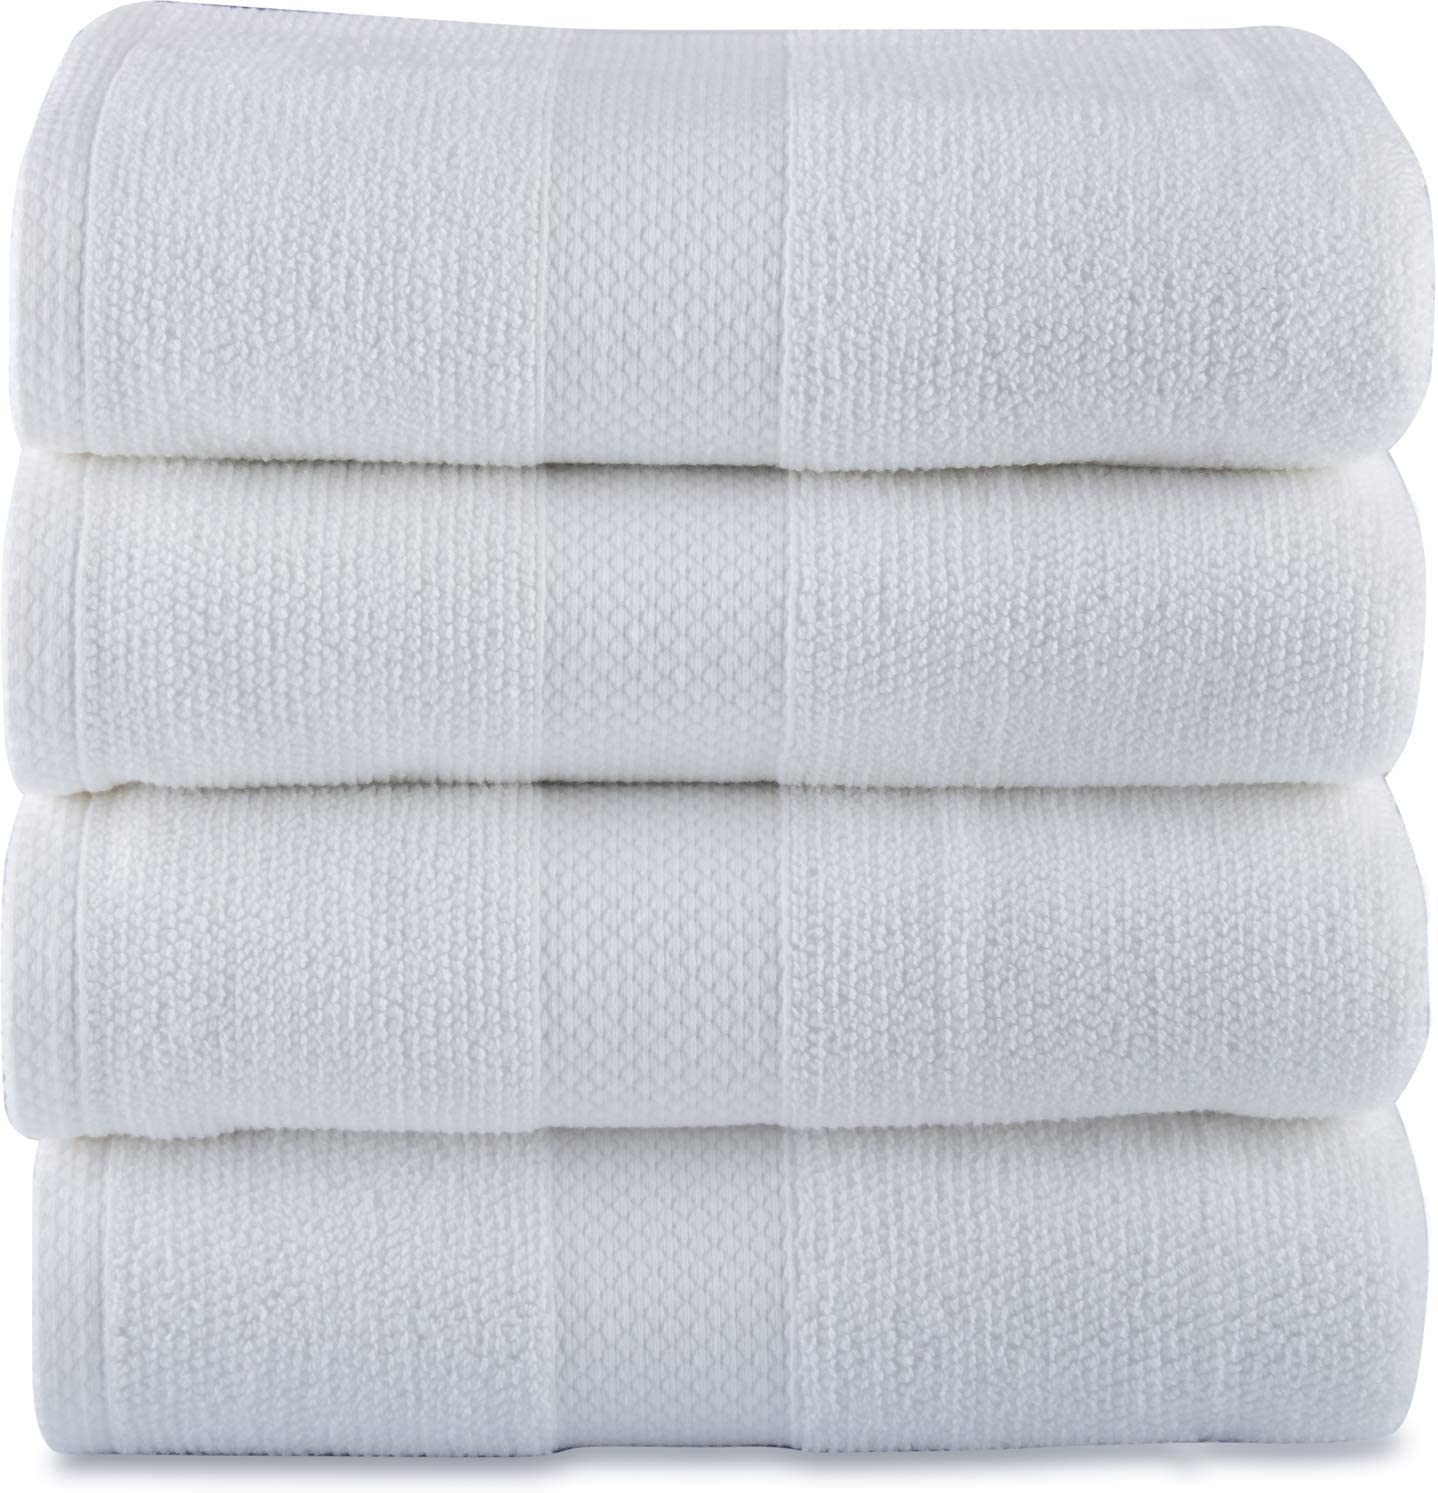 Maura Bath Max 44% OFF Towels White Easy-to-use Grey 100% with 27